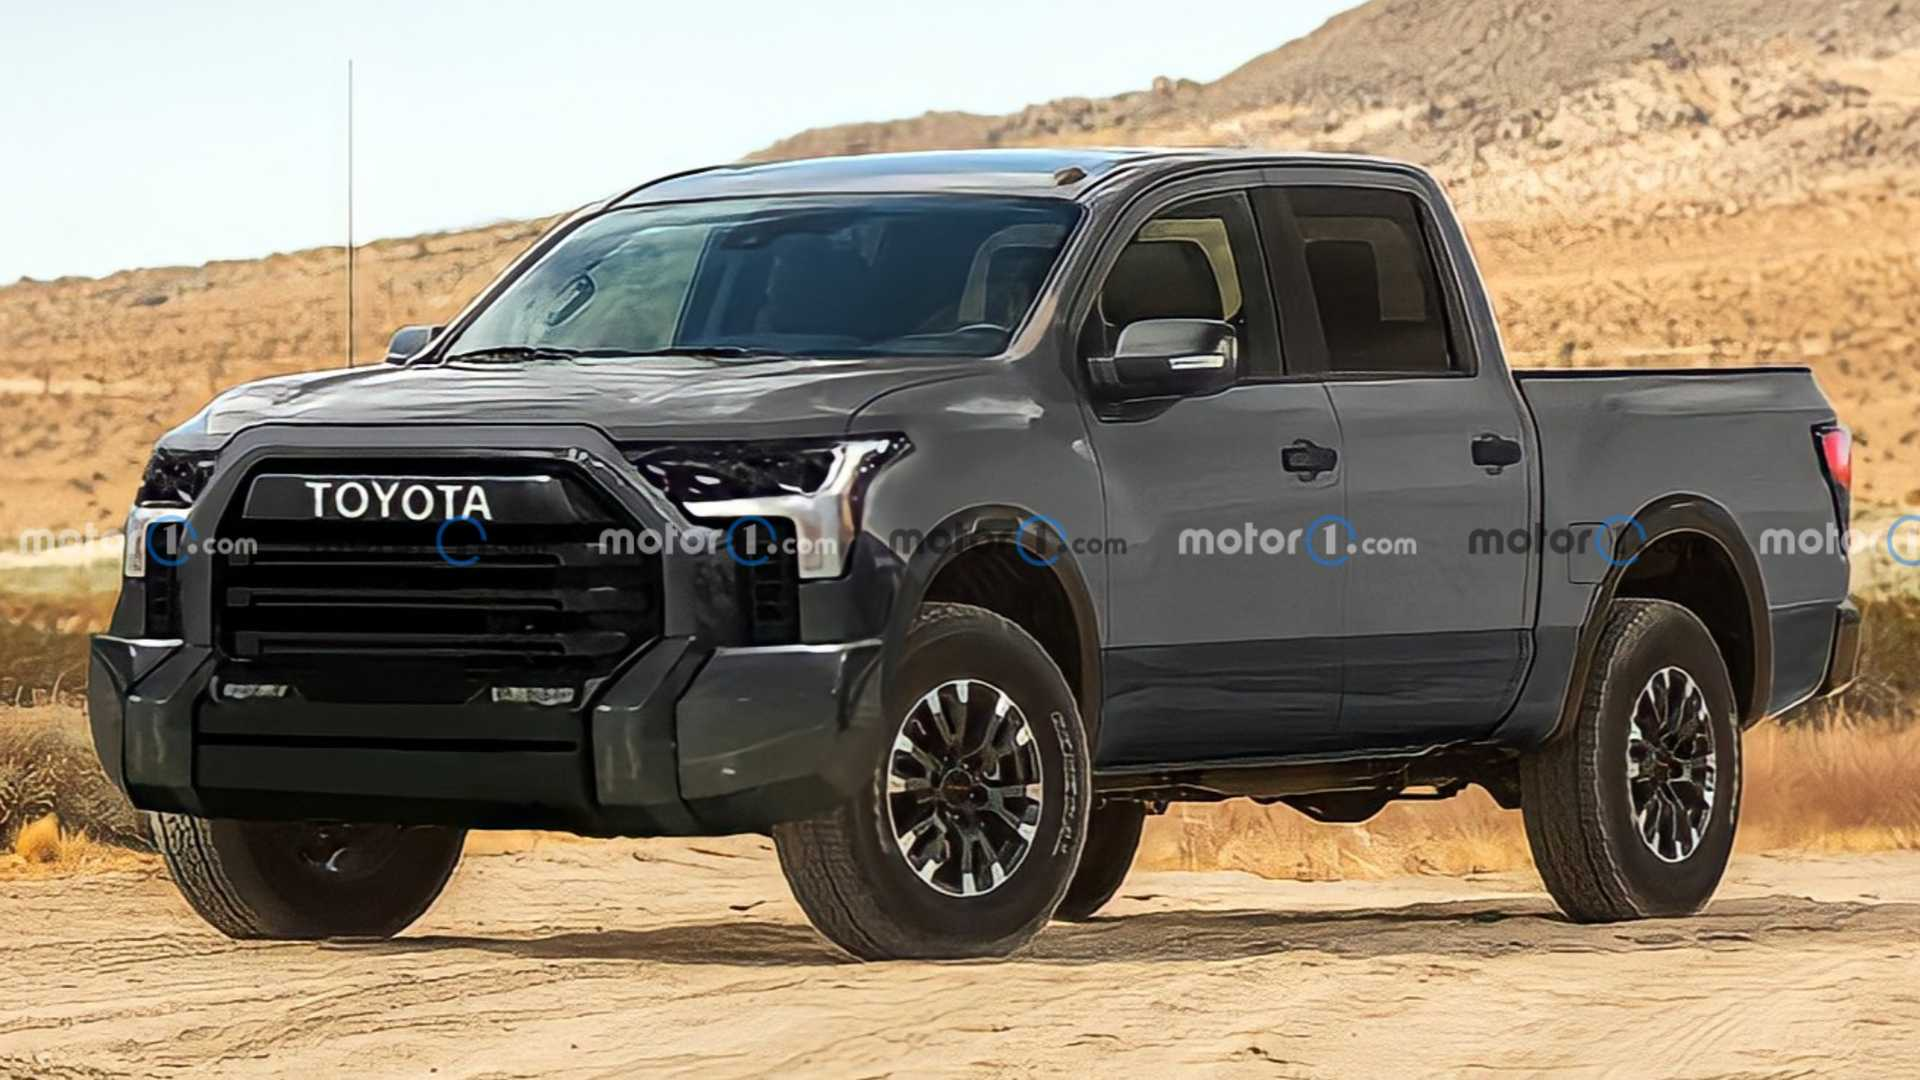 2022 Toyota Tundra Rendered After Leaked Image New Video Emerges